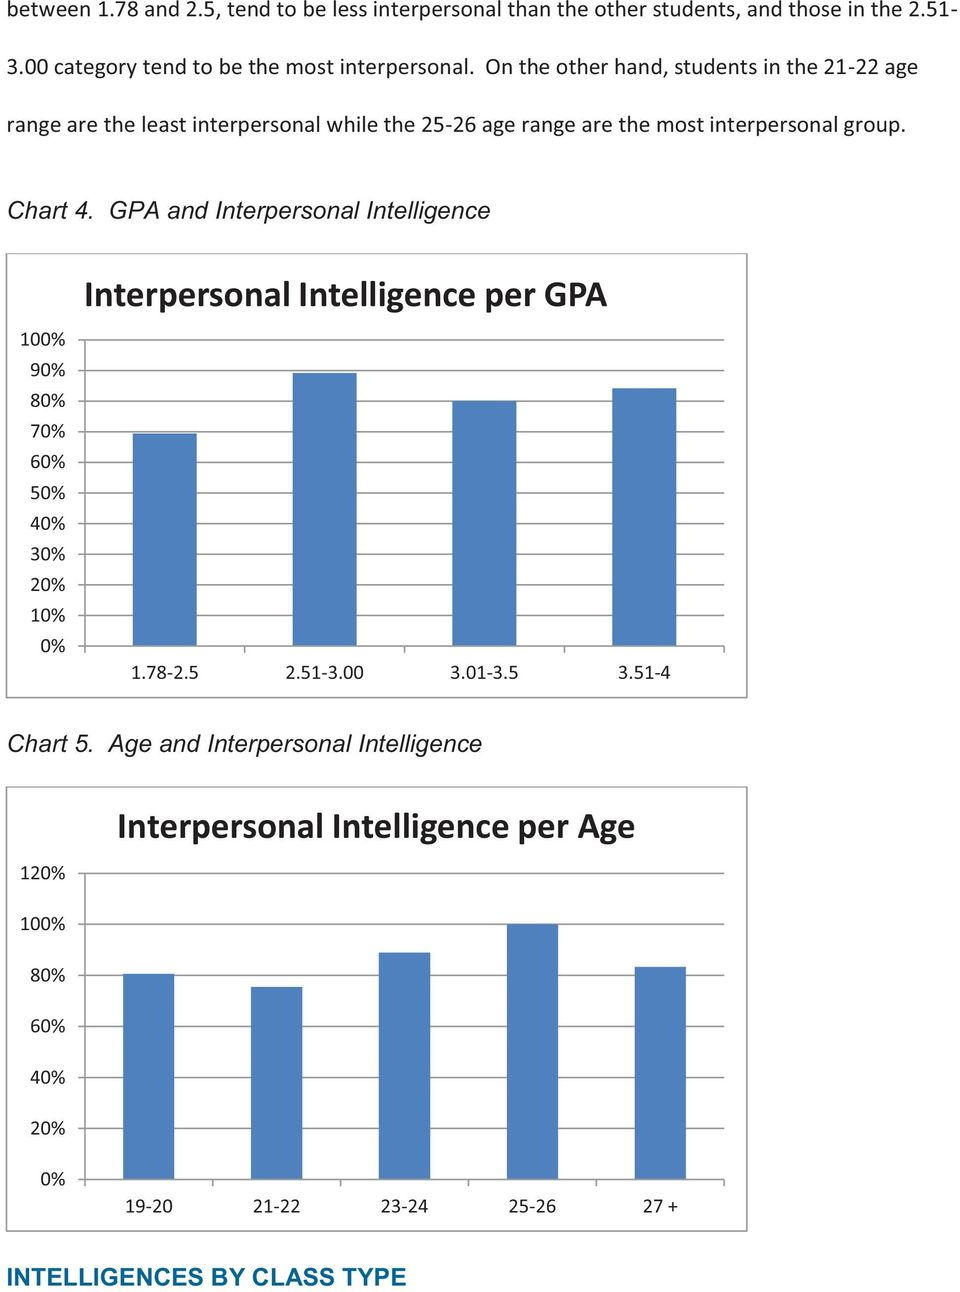 GPA and Interpersonal Intelligence Interpersonal Intelligence per GPA 100% 90% 80% 70% 60% 50% 40% 30% 20% 10% 0% 1.78-2.5 2.51-3.00 3.01-3.5 3.